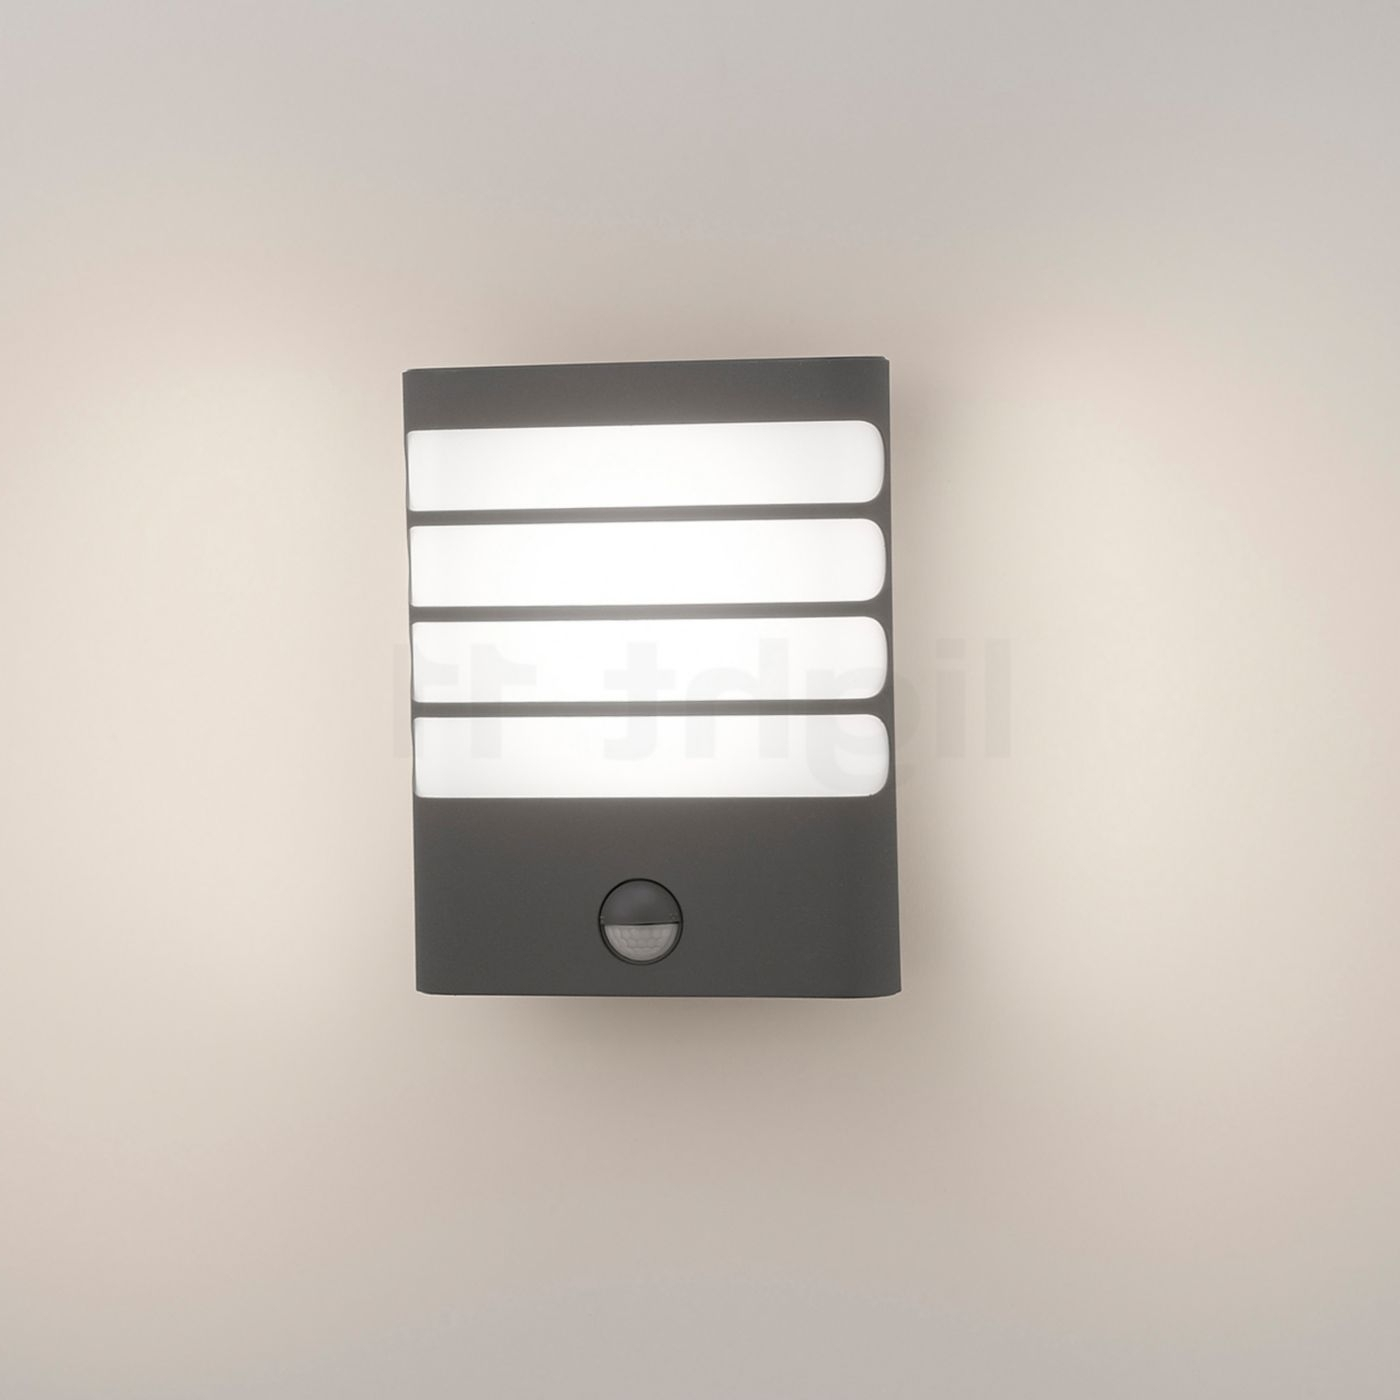 Favorite Led Outdoor Raccoon Wall Lights With Motion Detector Inside Philips Mygarden Raccoon 17274 Wall Light With Motion Detector Led (View 5 of 20)